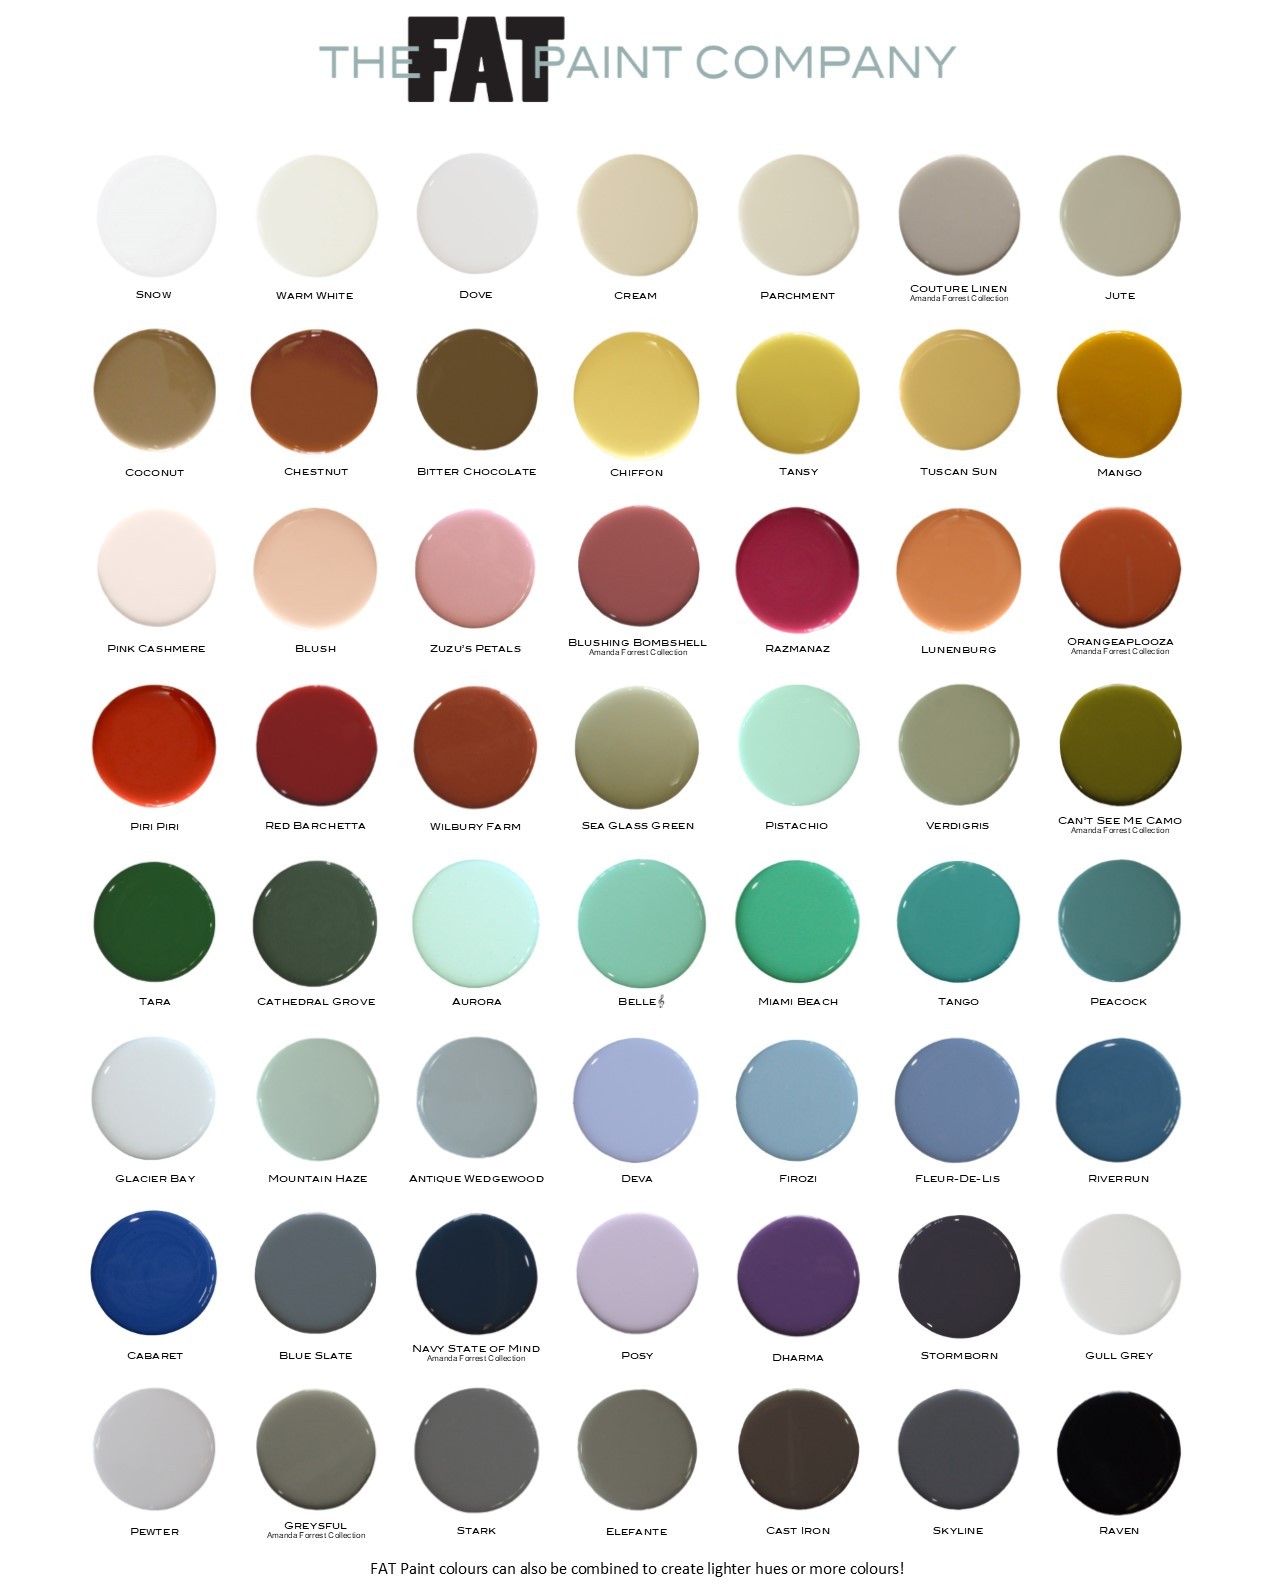 hight resolution of that s why it s vital that the fat palette is current and relevant to today s colour trends